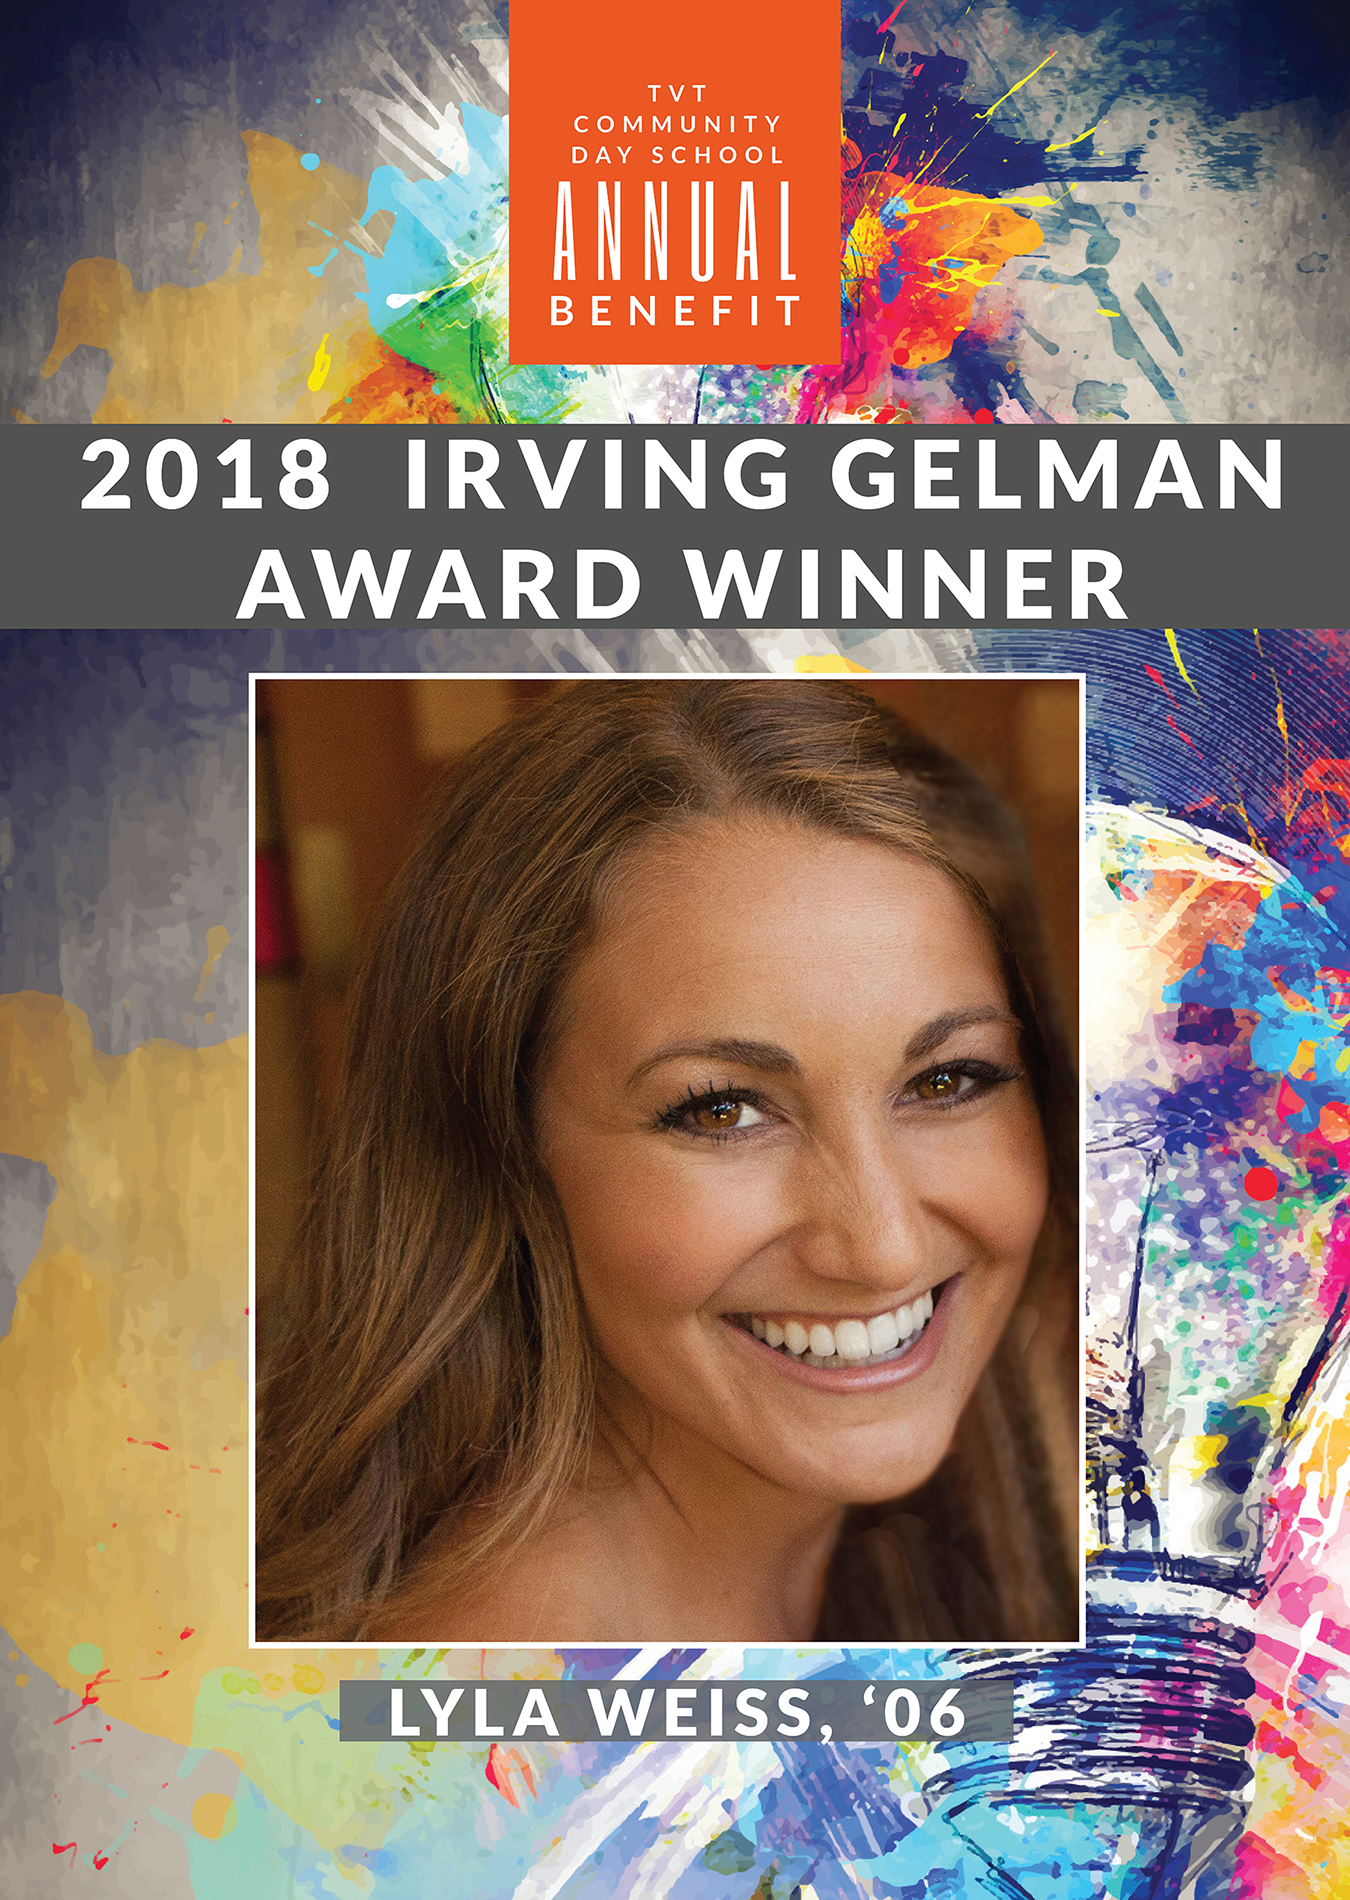 TVT_Irving Gelman Award_Recipients 2018